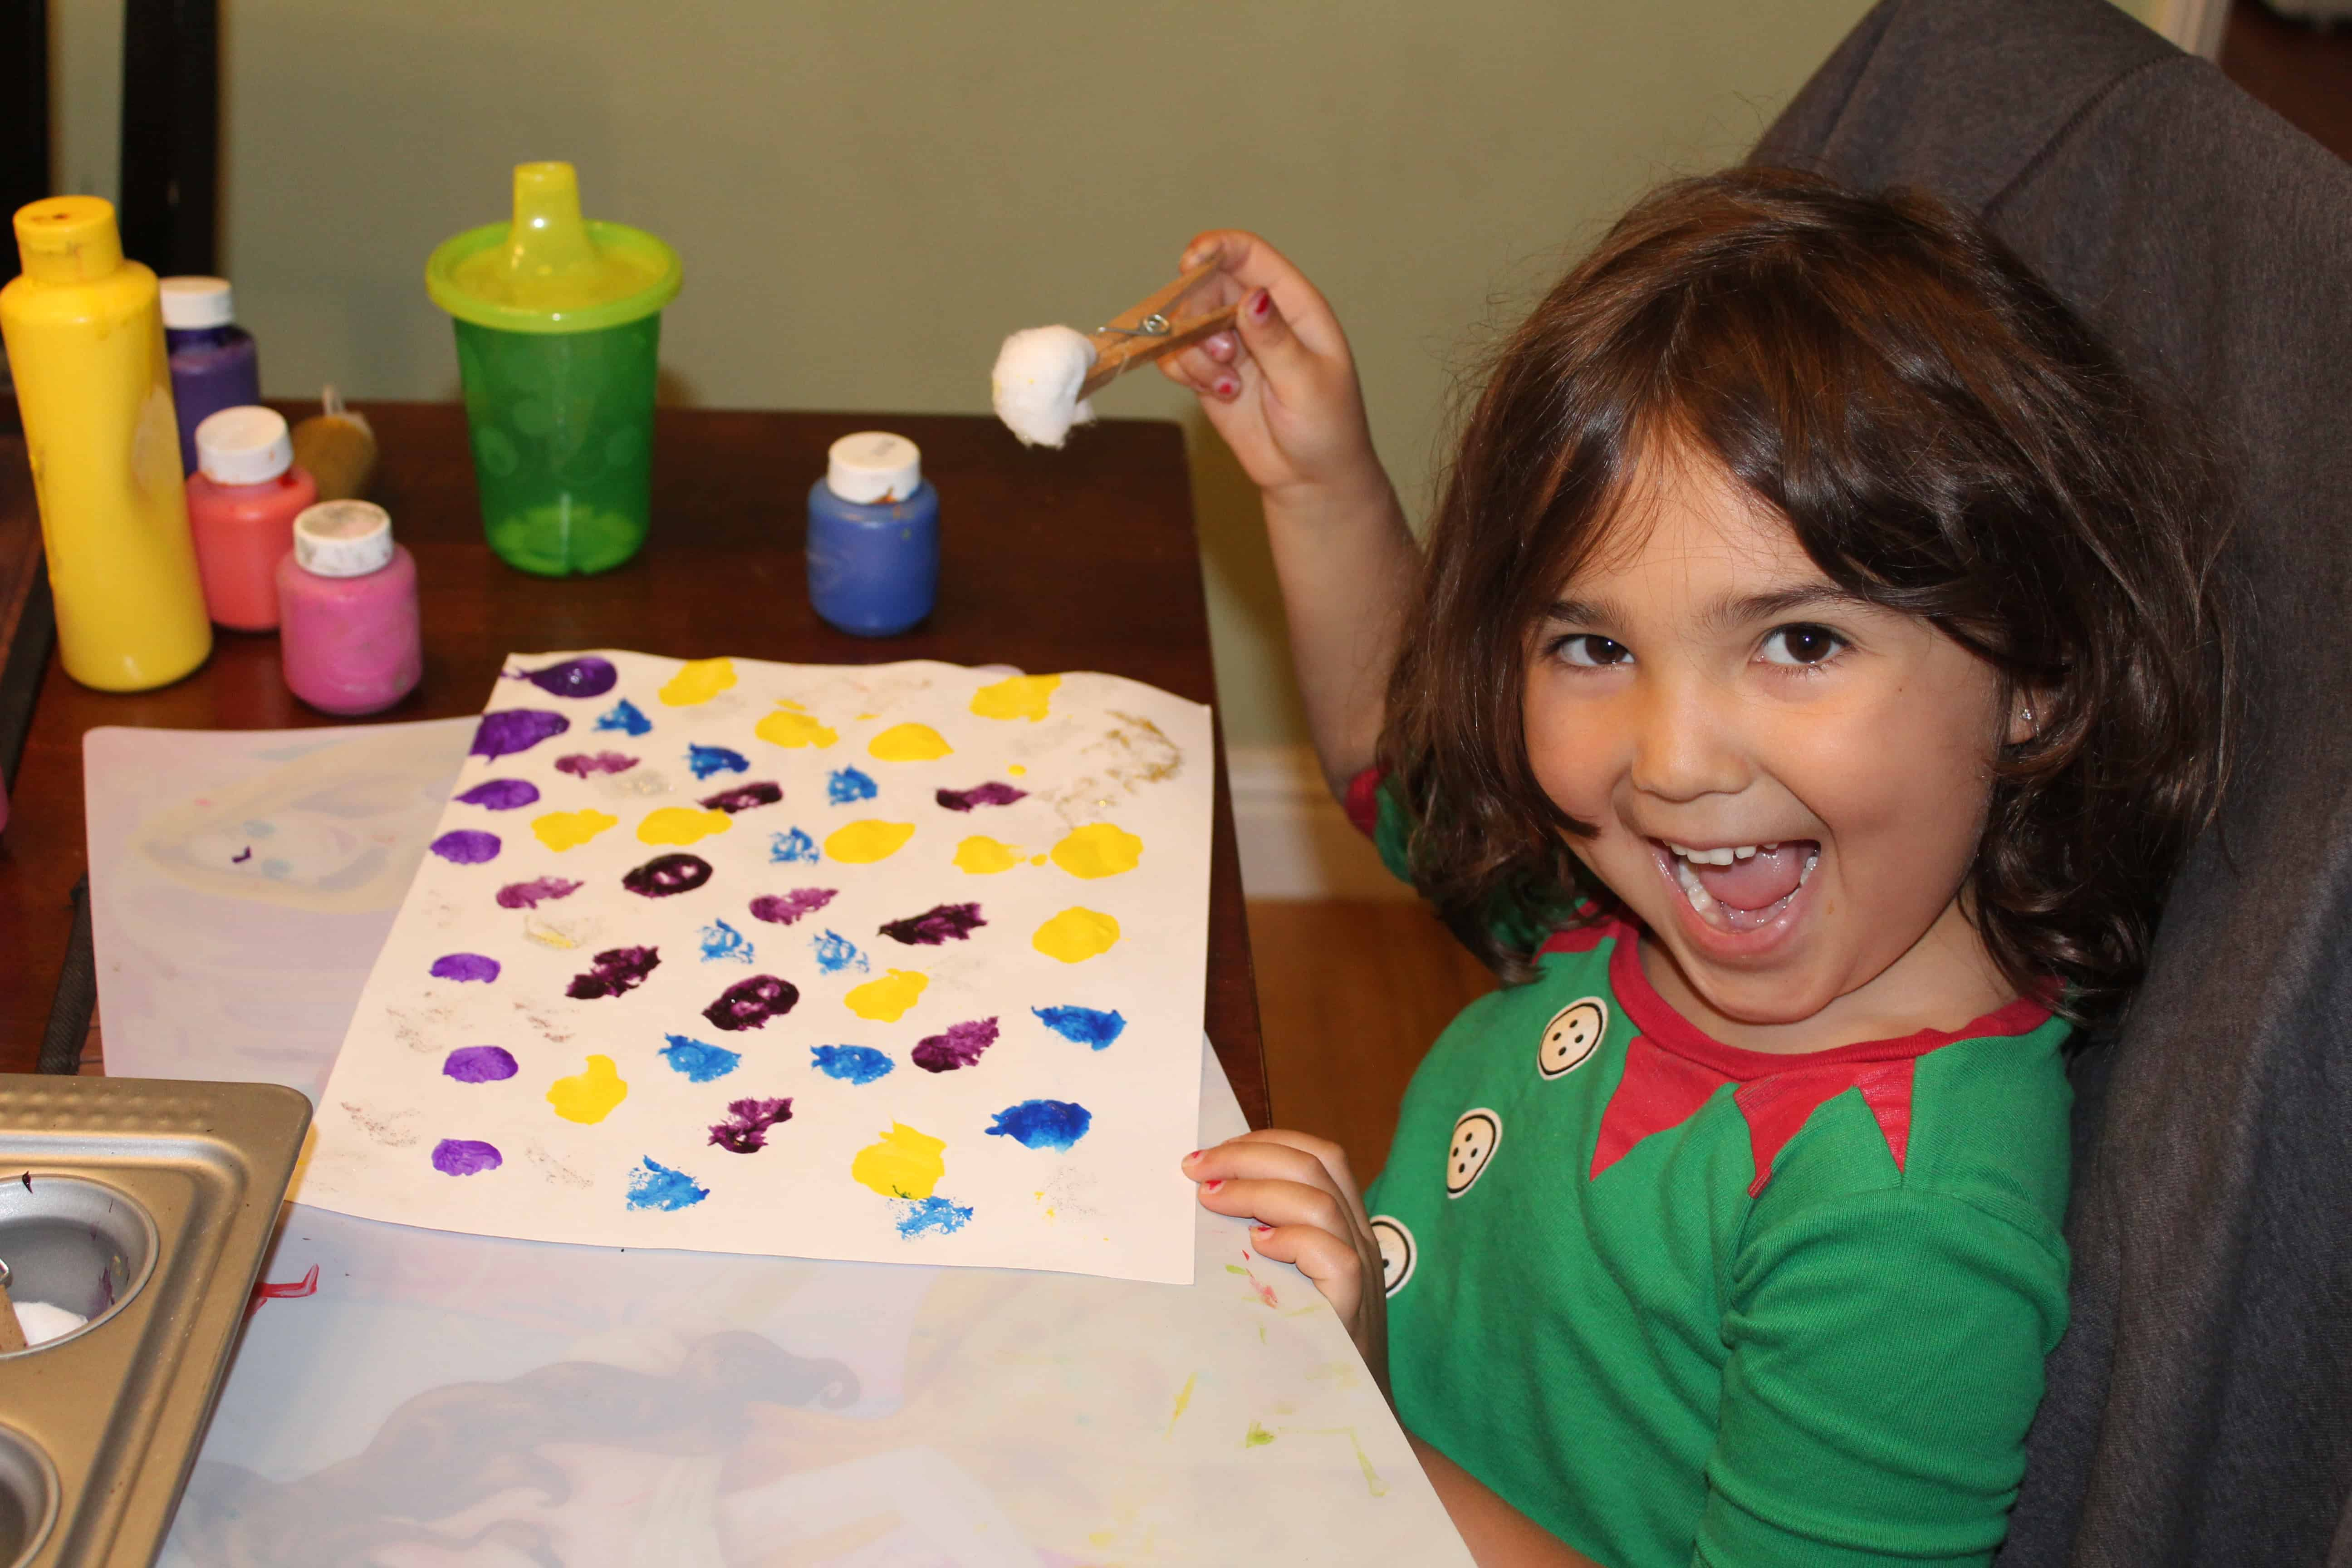 Young girl smiling painting with a clothespin cotton ball on a white sheet of paper